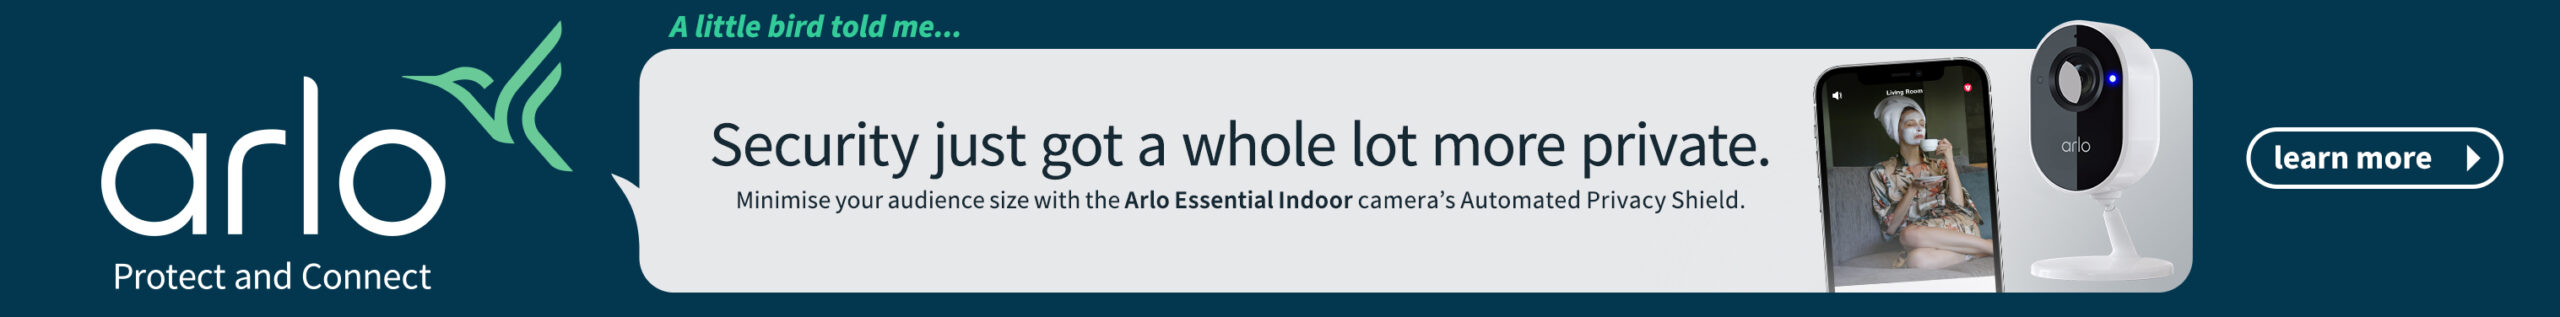 ARL0355 Arlo ESS Indoor Generic Banner 728x90 V4 scaled Microsofts Surface Costs $229 More Than Its Parts